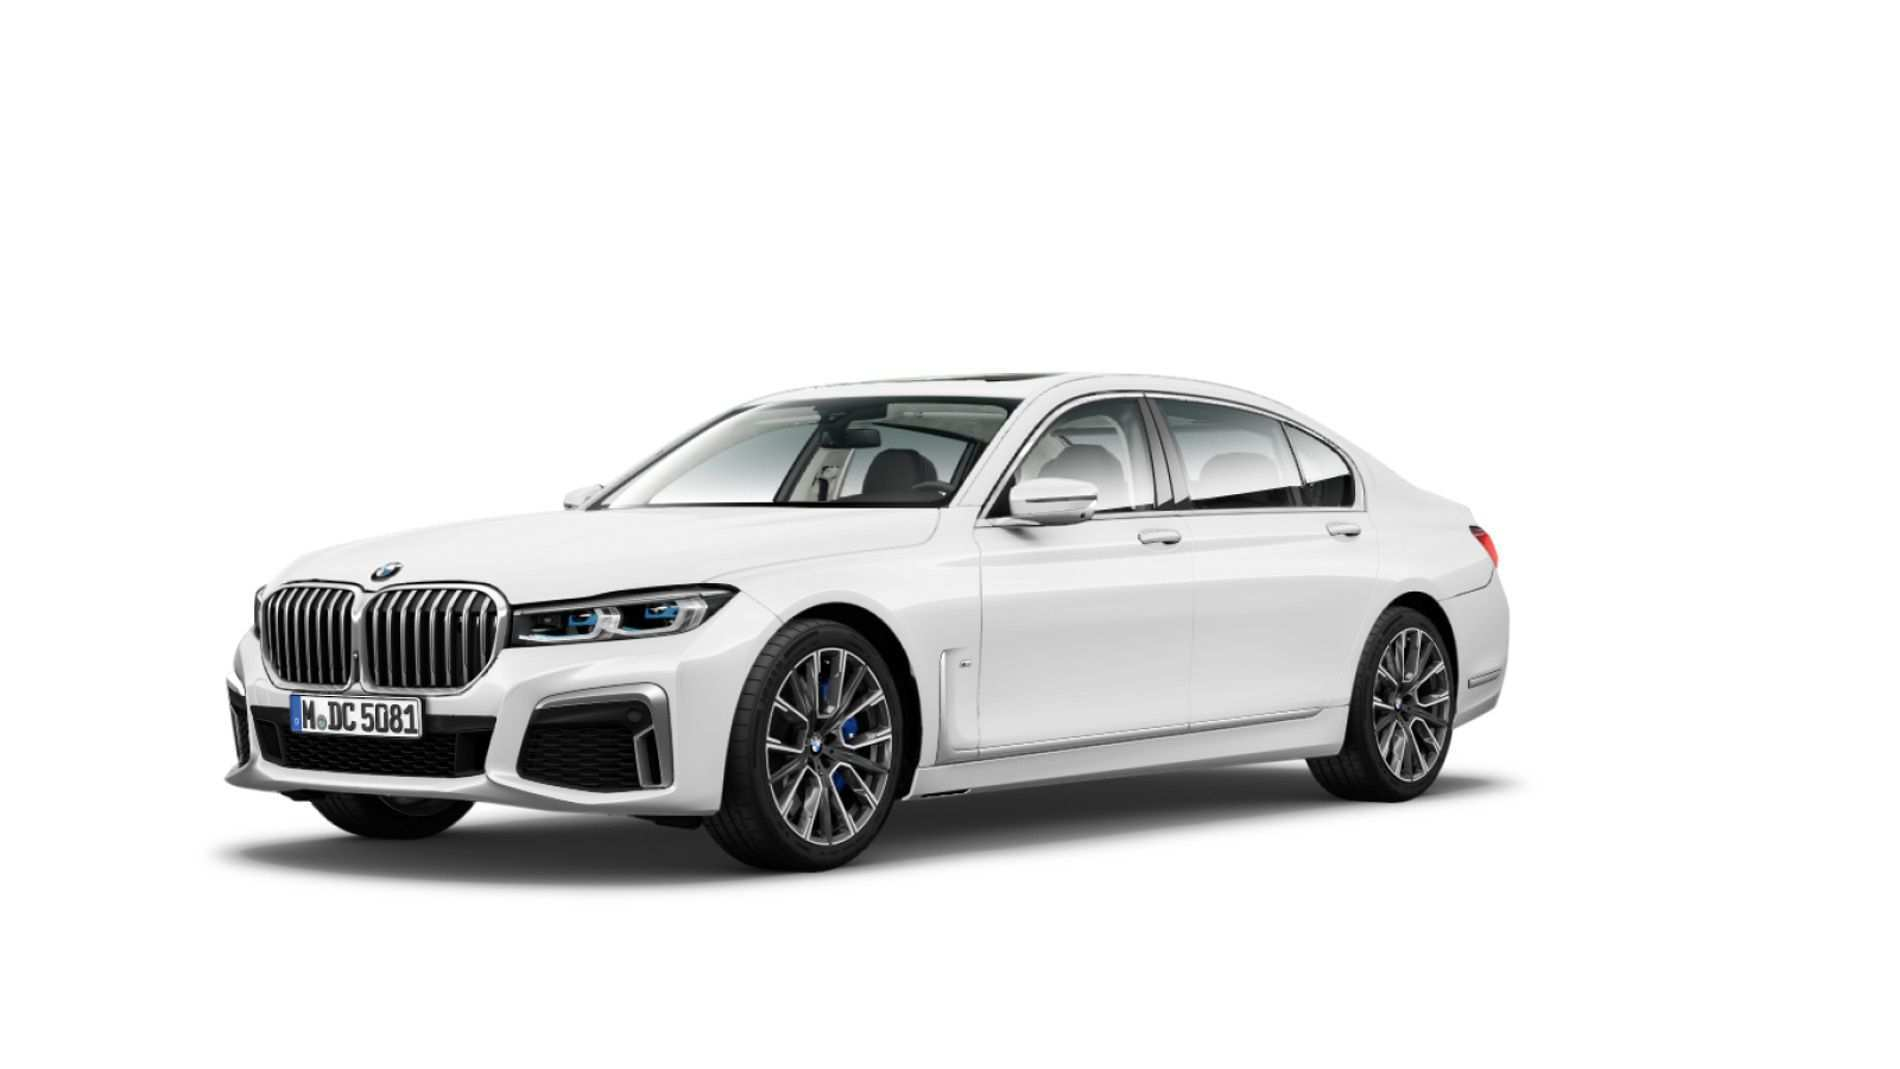 74 All New BMW 5 Series Lci 2020 New Concept